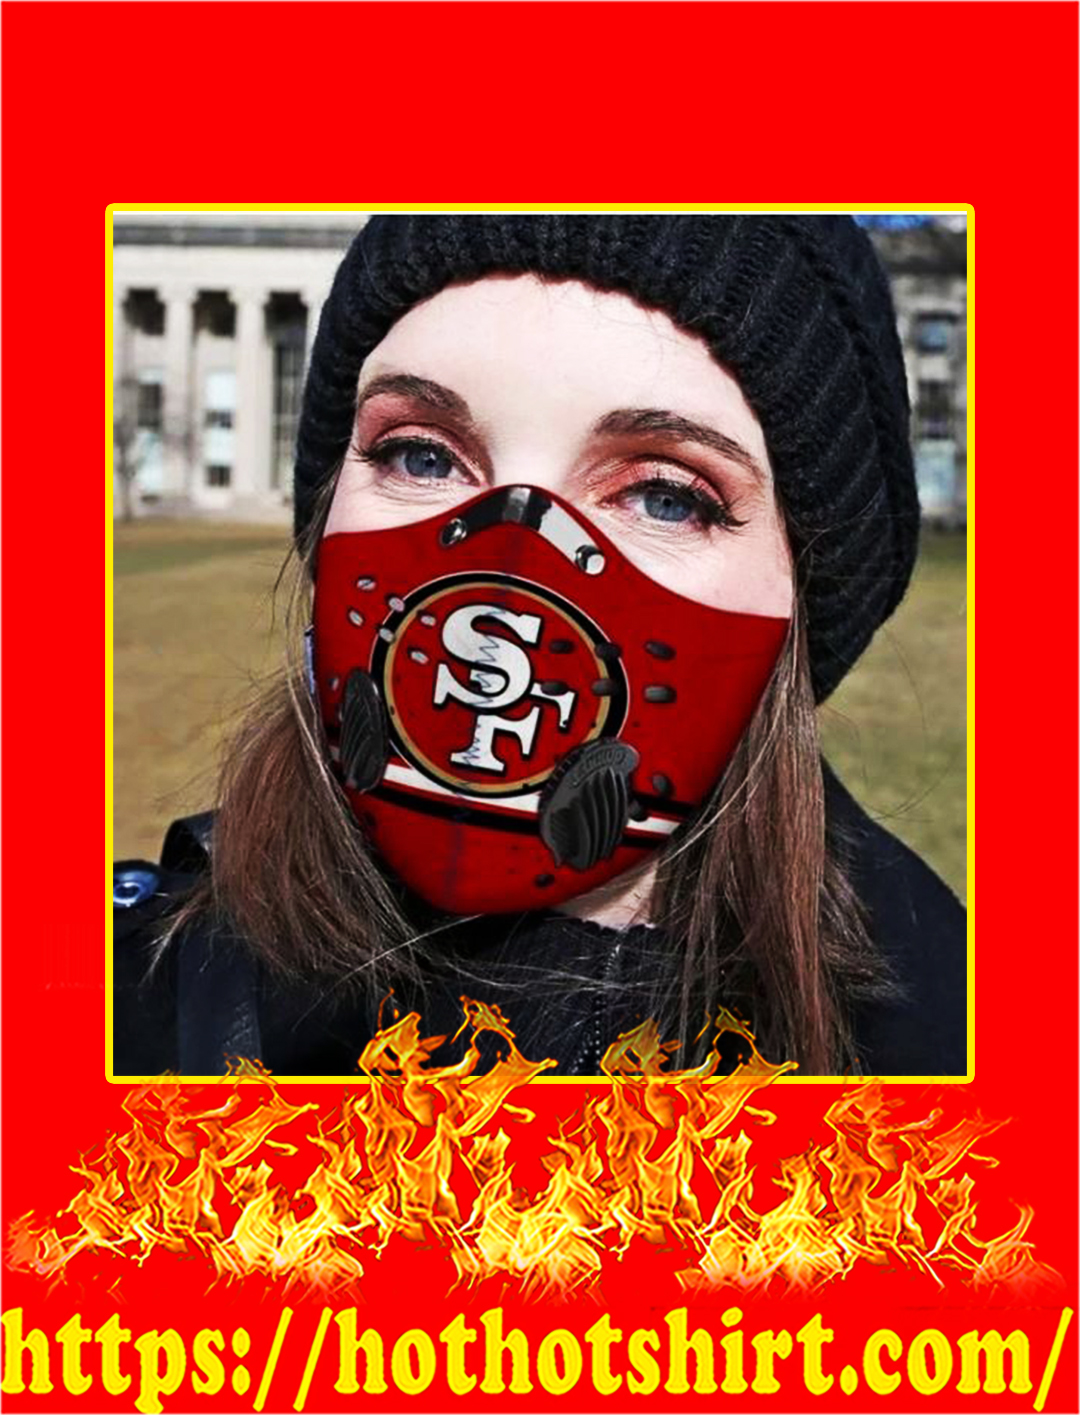 SF 49ers POD face mask - pic 1